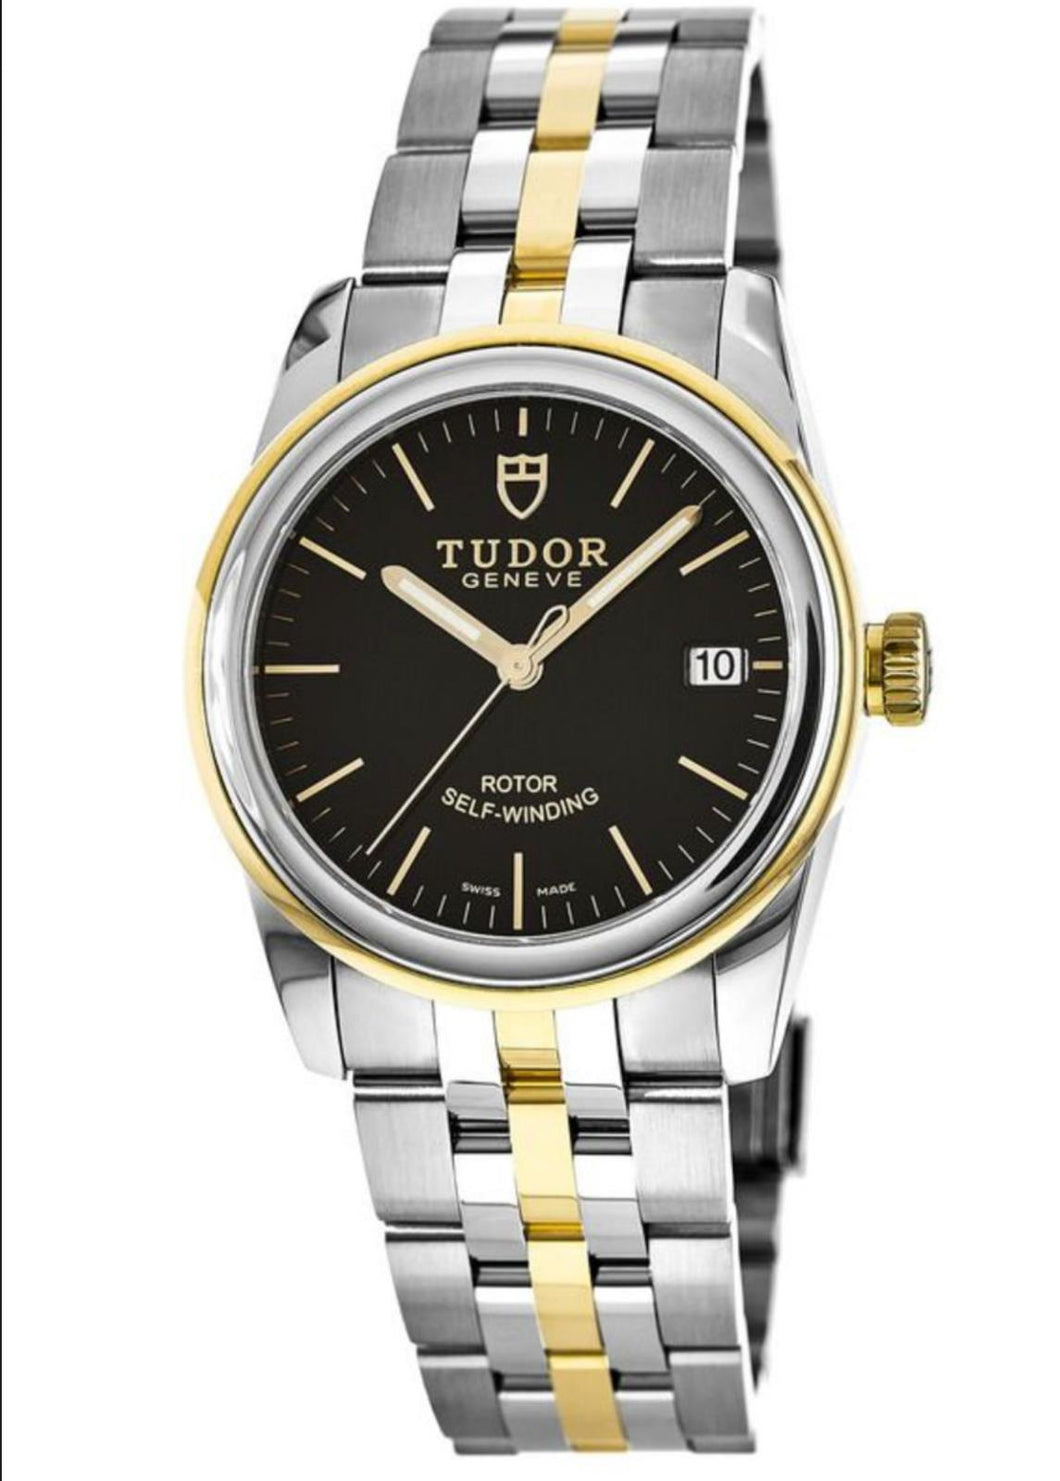 Tudor Glamour Date 36mm Automatic Steel & Gold Watch 55003